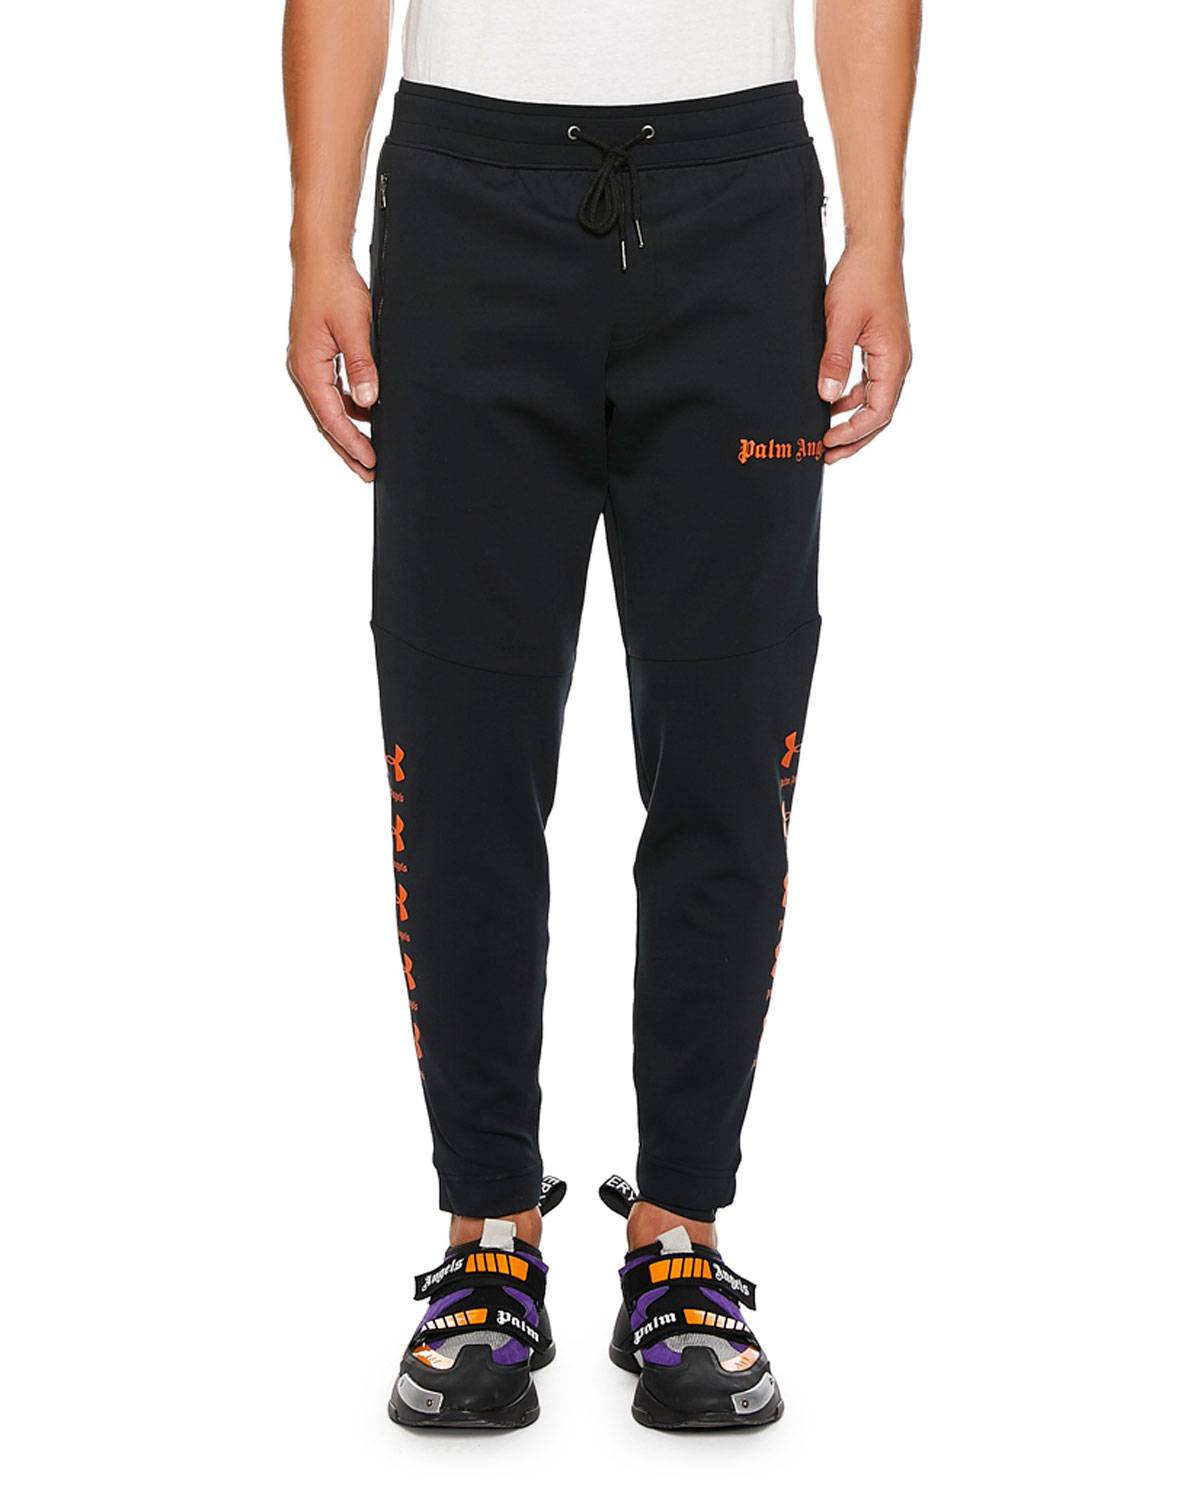 Palm Angels Tops MEN'S UA SLIM LOGO JOGGERS